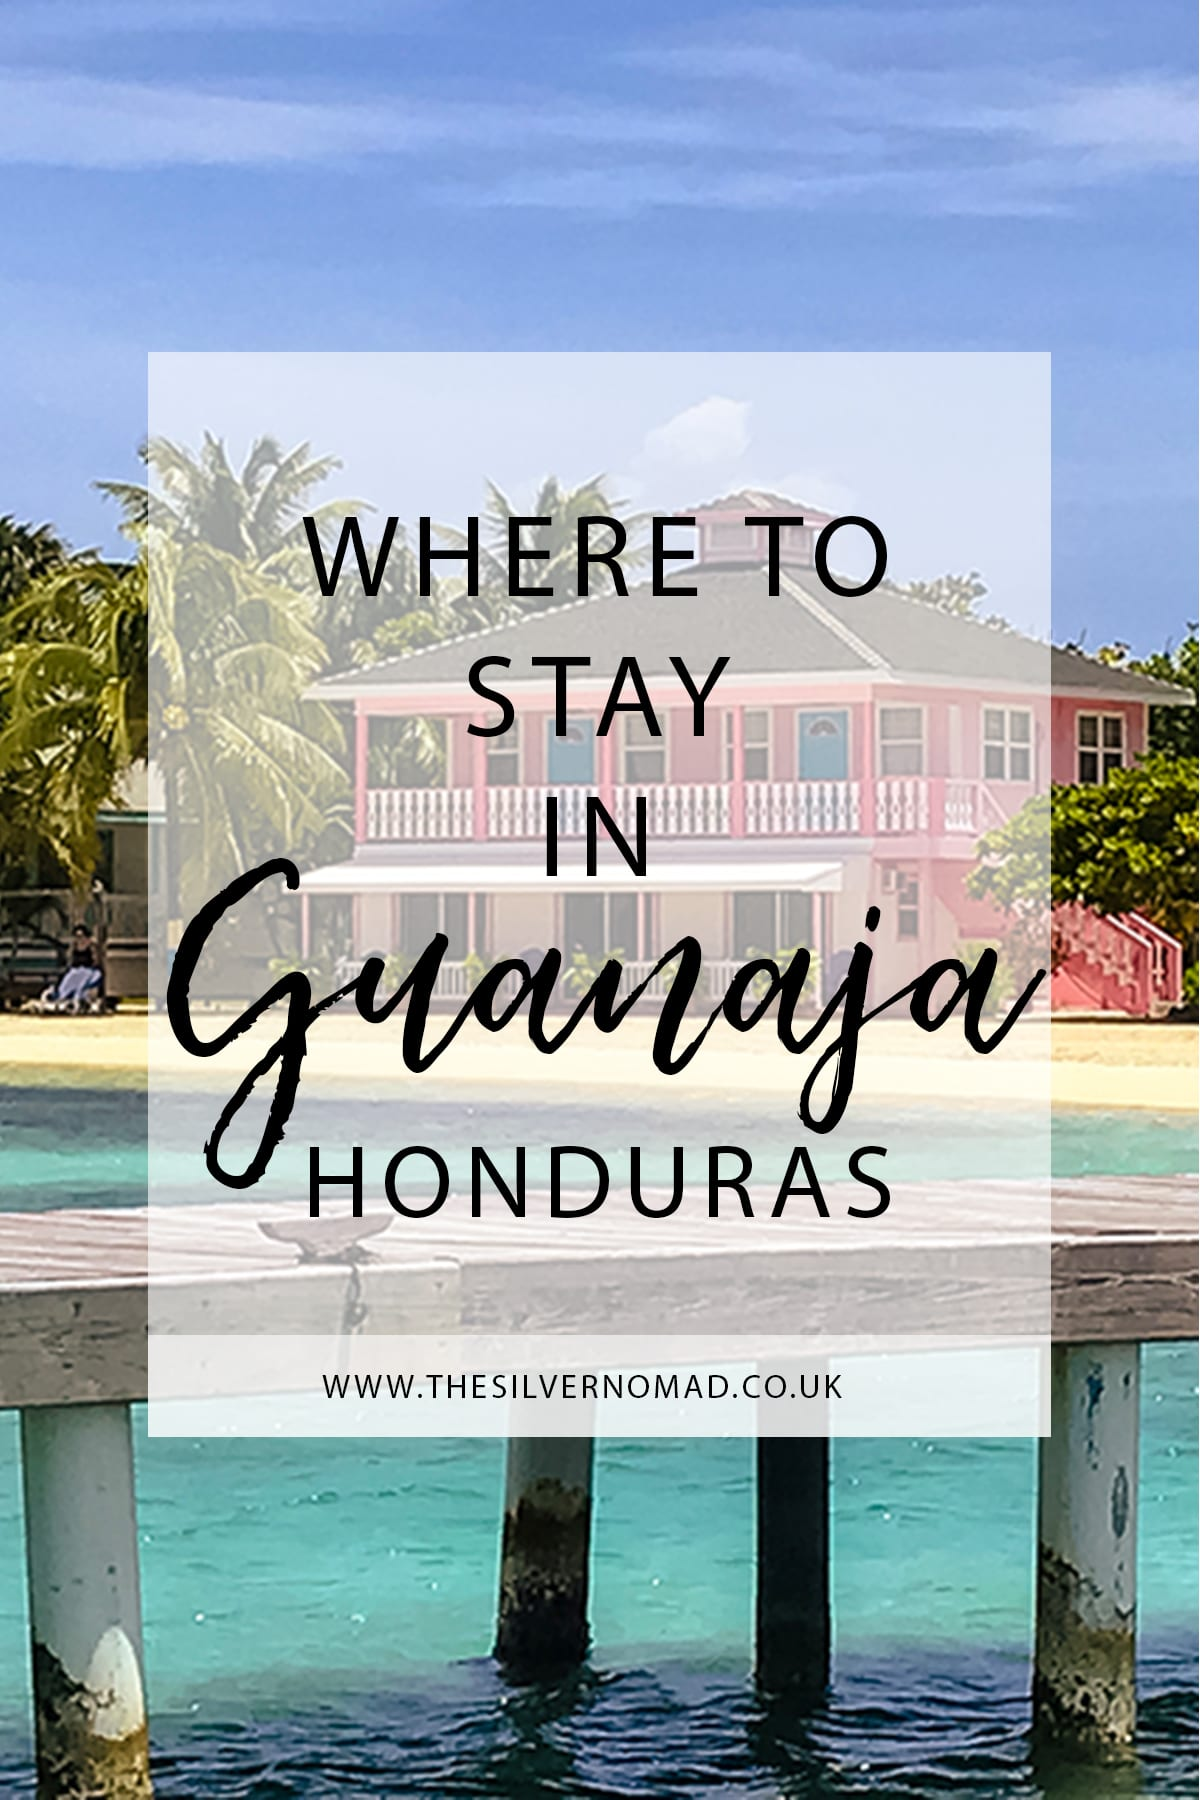 Where to stay in Guanaja Honduras with pink house, sand and wooden jetty in the background